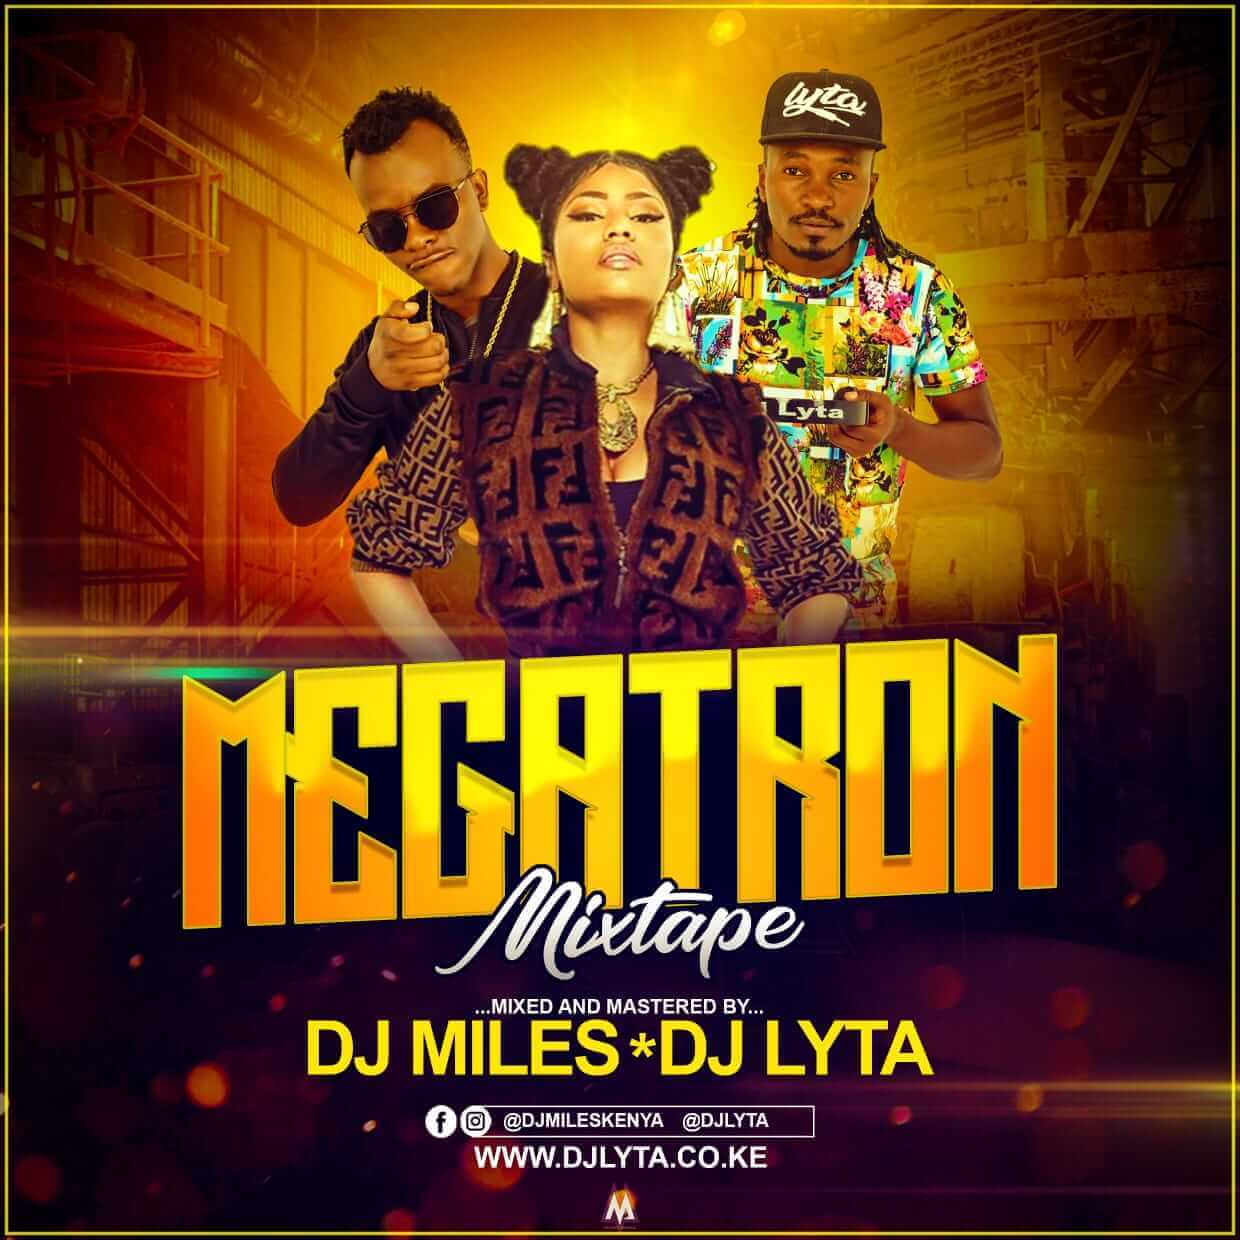 Dj Lyta & Dj Miles - Megatron Mix Download - DJ LYTA